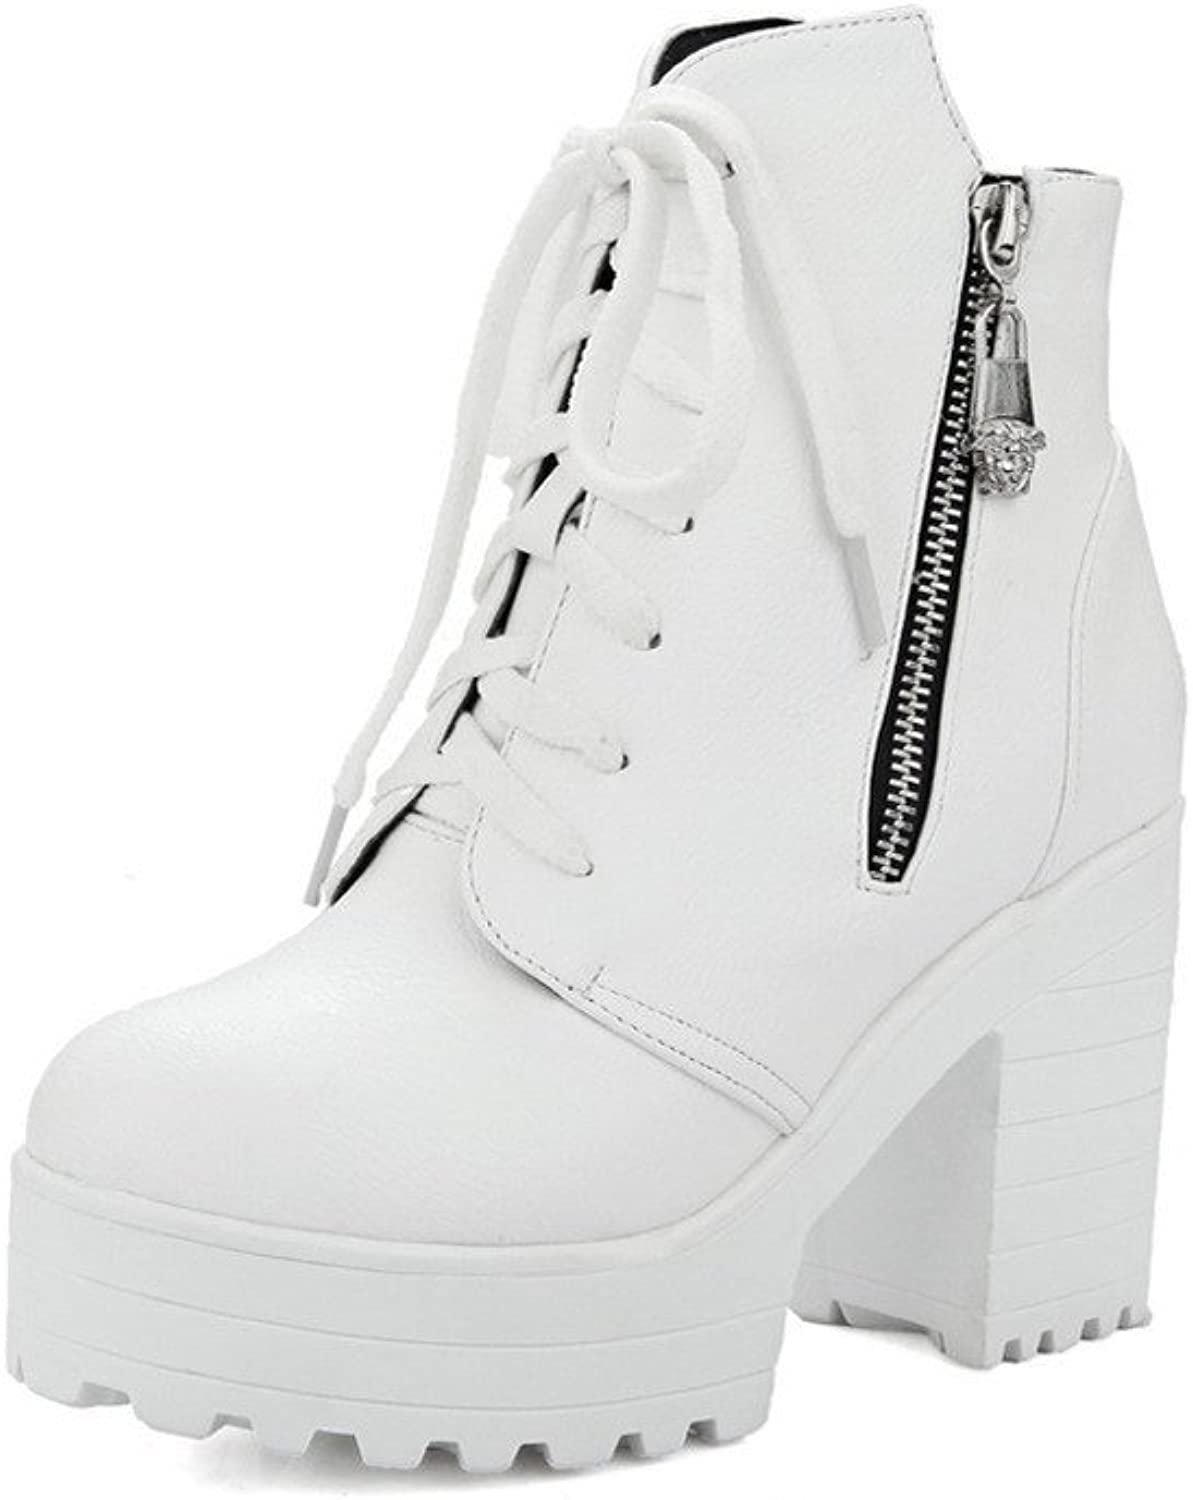 AmoonyFashion Women's Round Closed Toe Low-top High-Heels Solid PU Boots